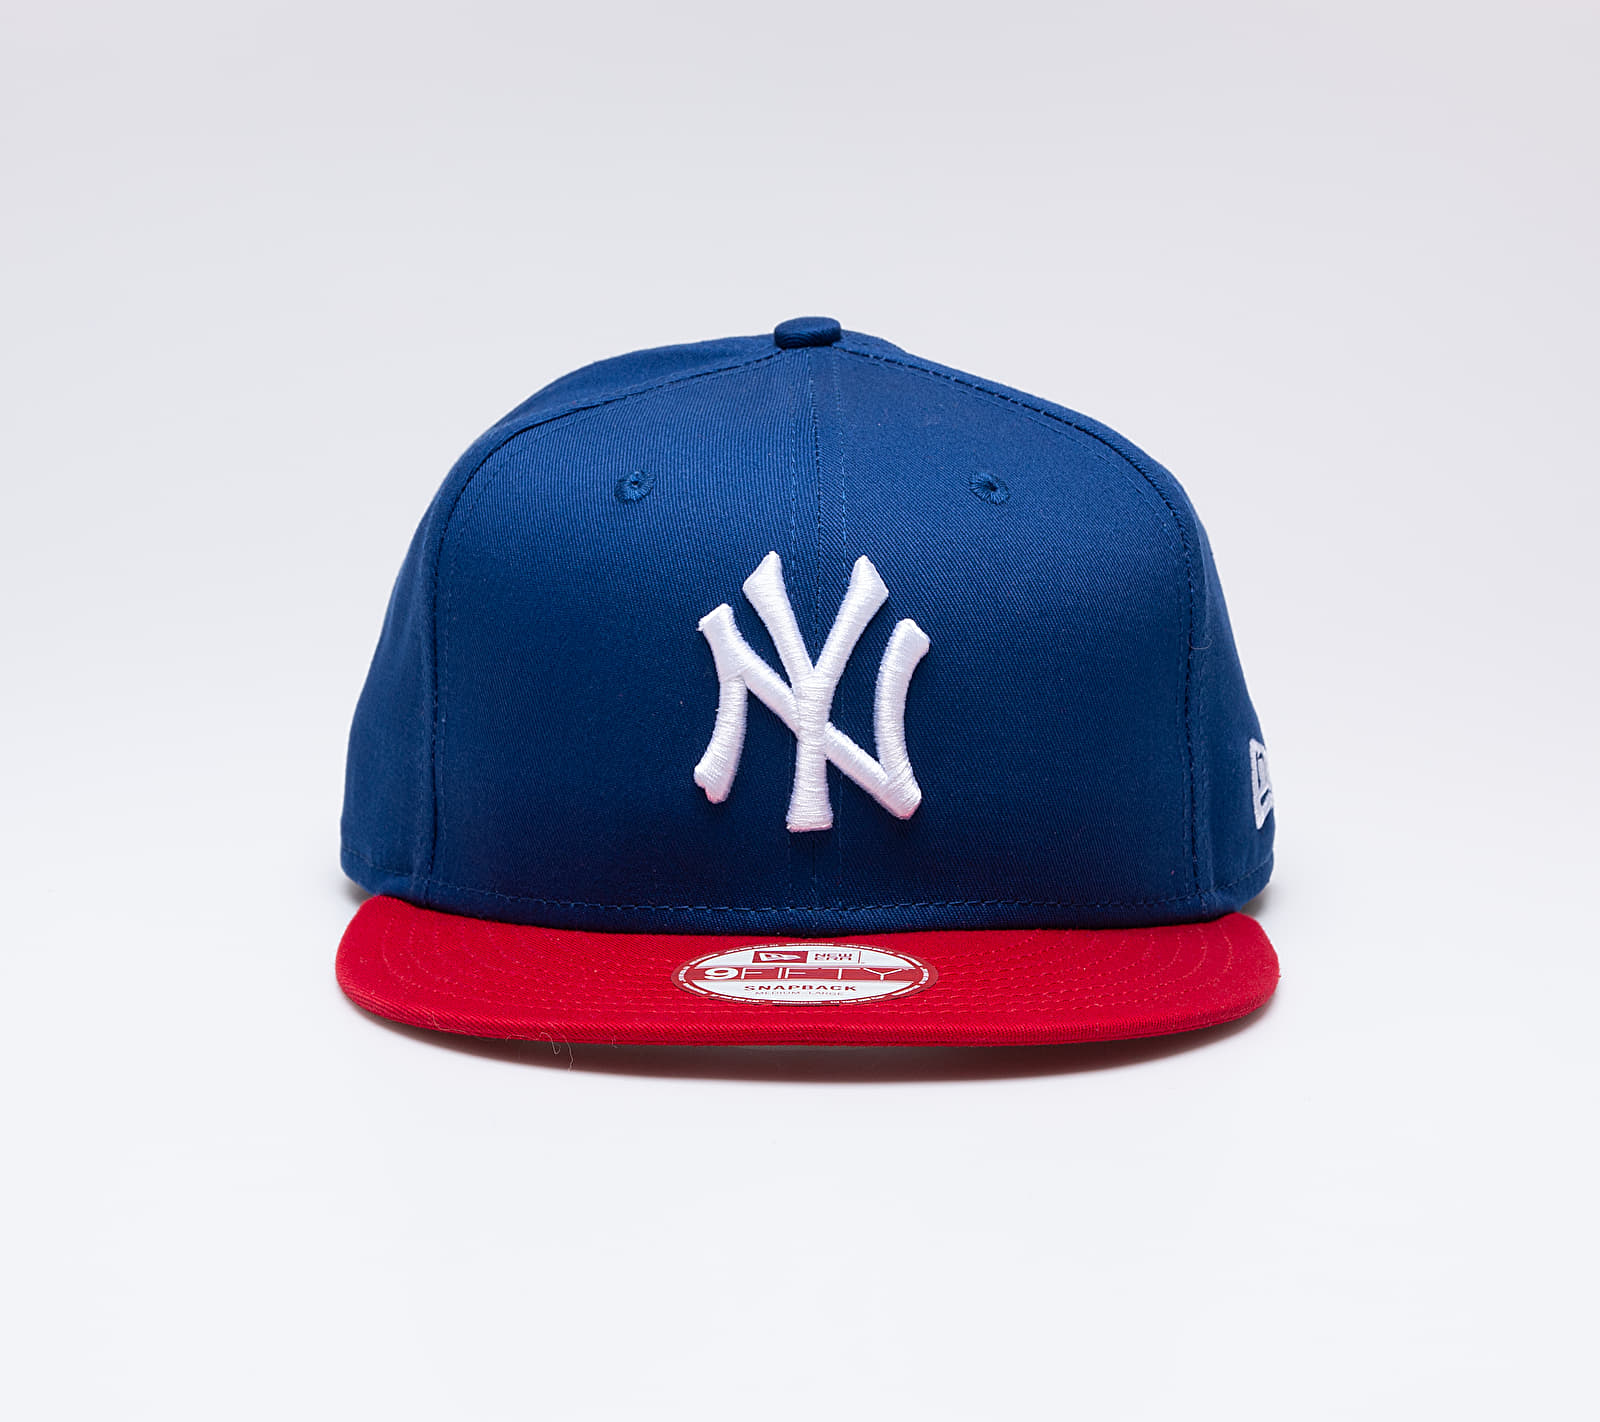 New Era 9Fifty MLB Cotton Block New York Yankees Cap Blue/ Red S-M